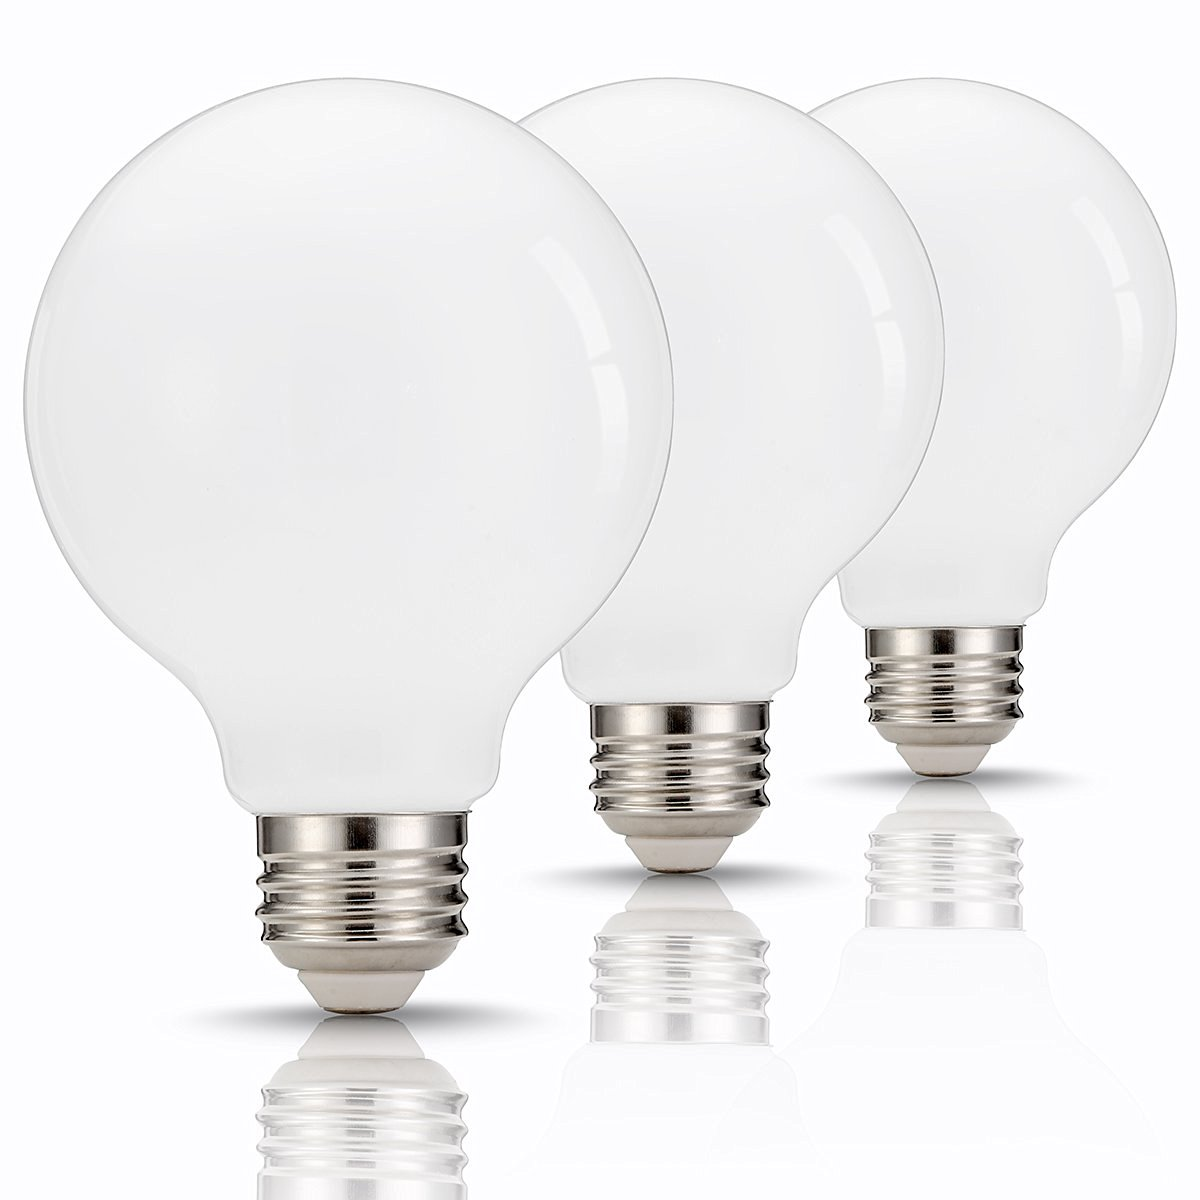 TGMold E26 LED Light Bulb, 3 Color Changing Light, 40W Equivalent(4W), 2700K/6000K/4000K Available, Adjustable Warm White/Cool White/Natural Daylight Bulbs for Chandelier, Ceiling Fixture, 2 Pack